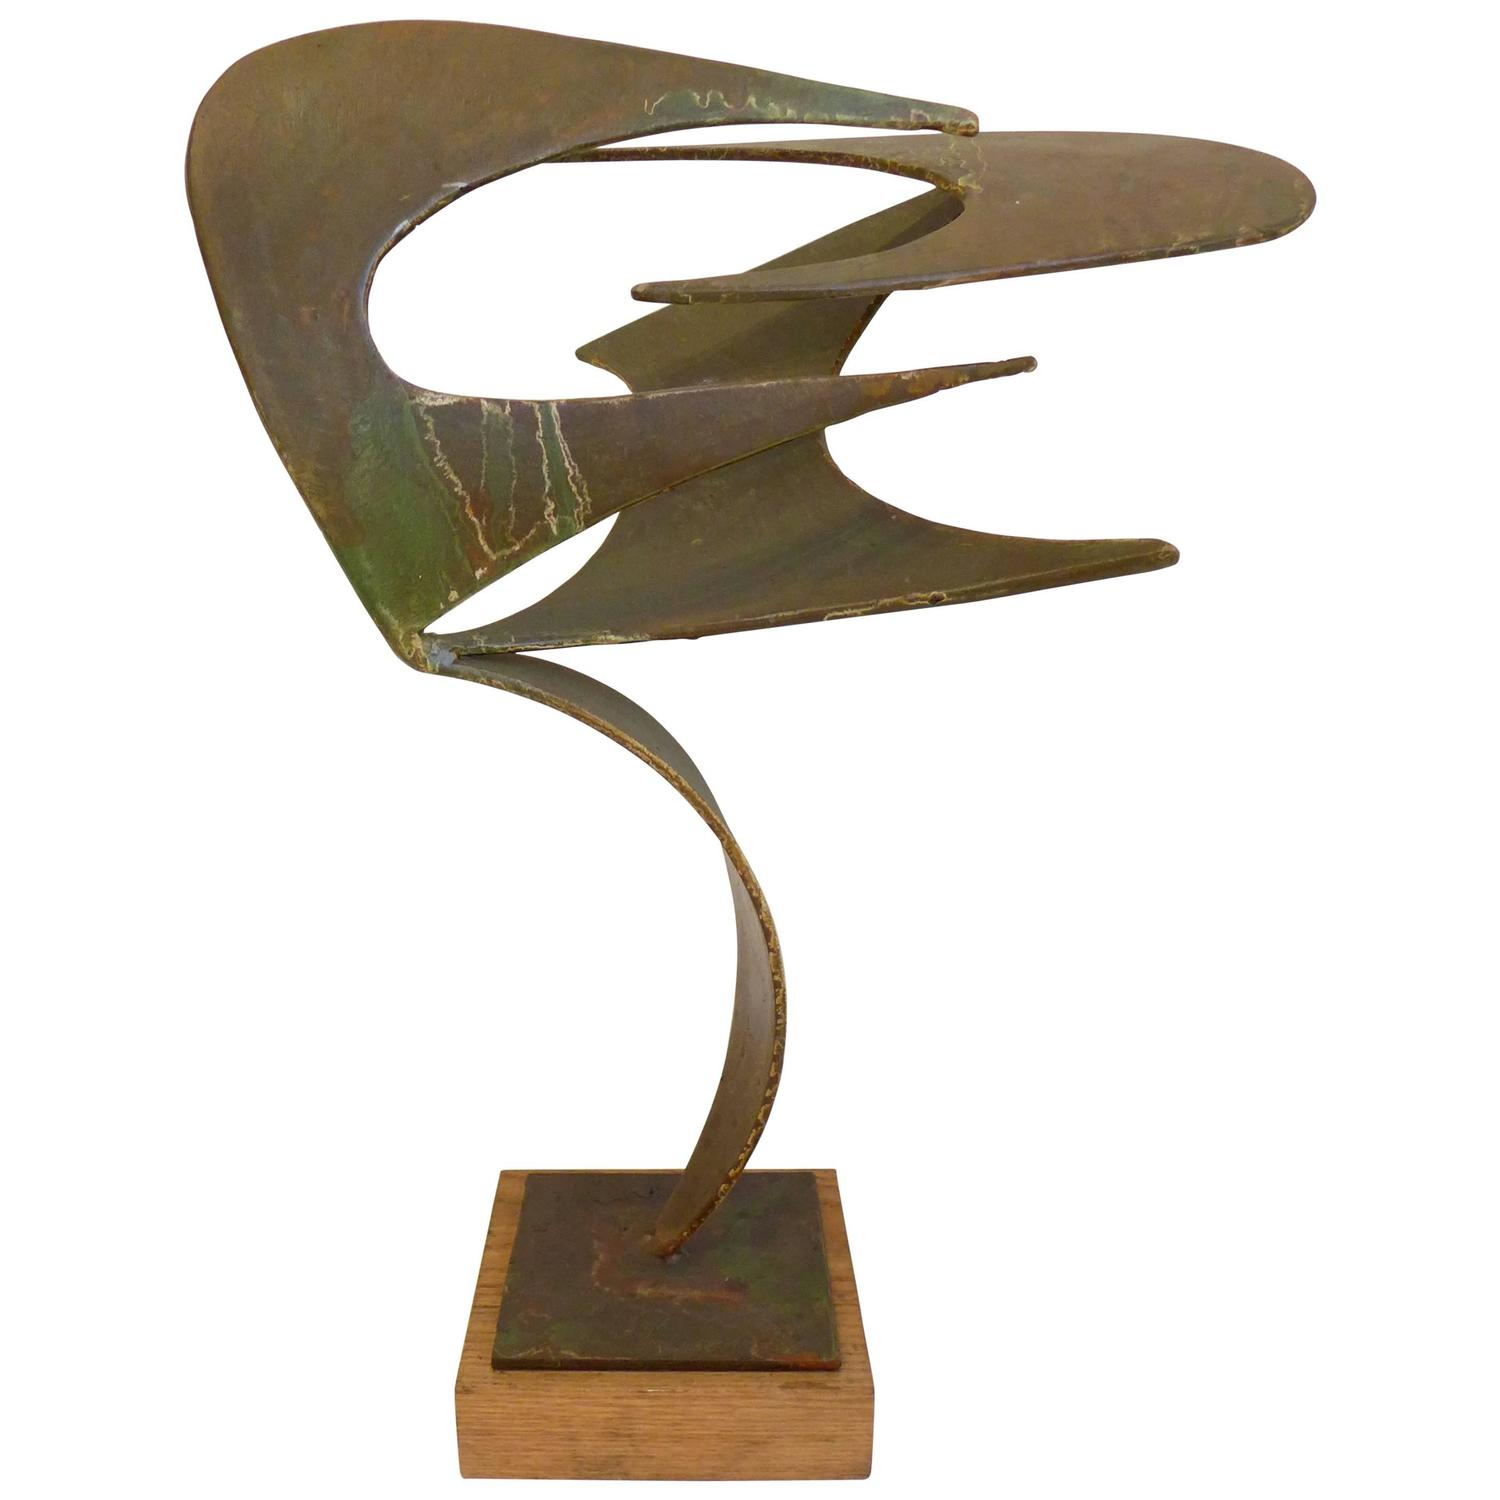 Abstract Steel Sculpture By James Bearden For Sale At 1stdibs